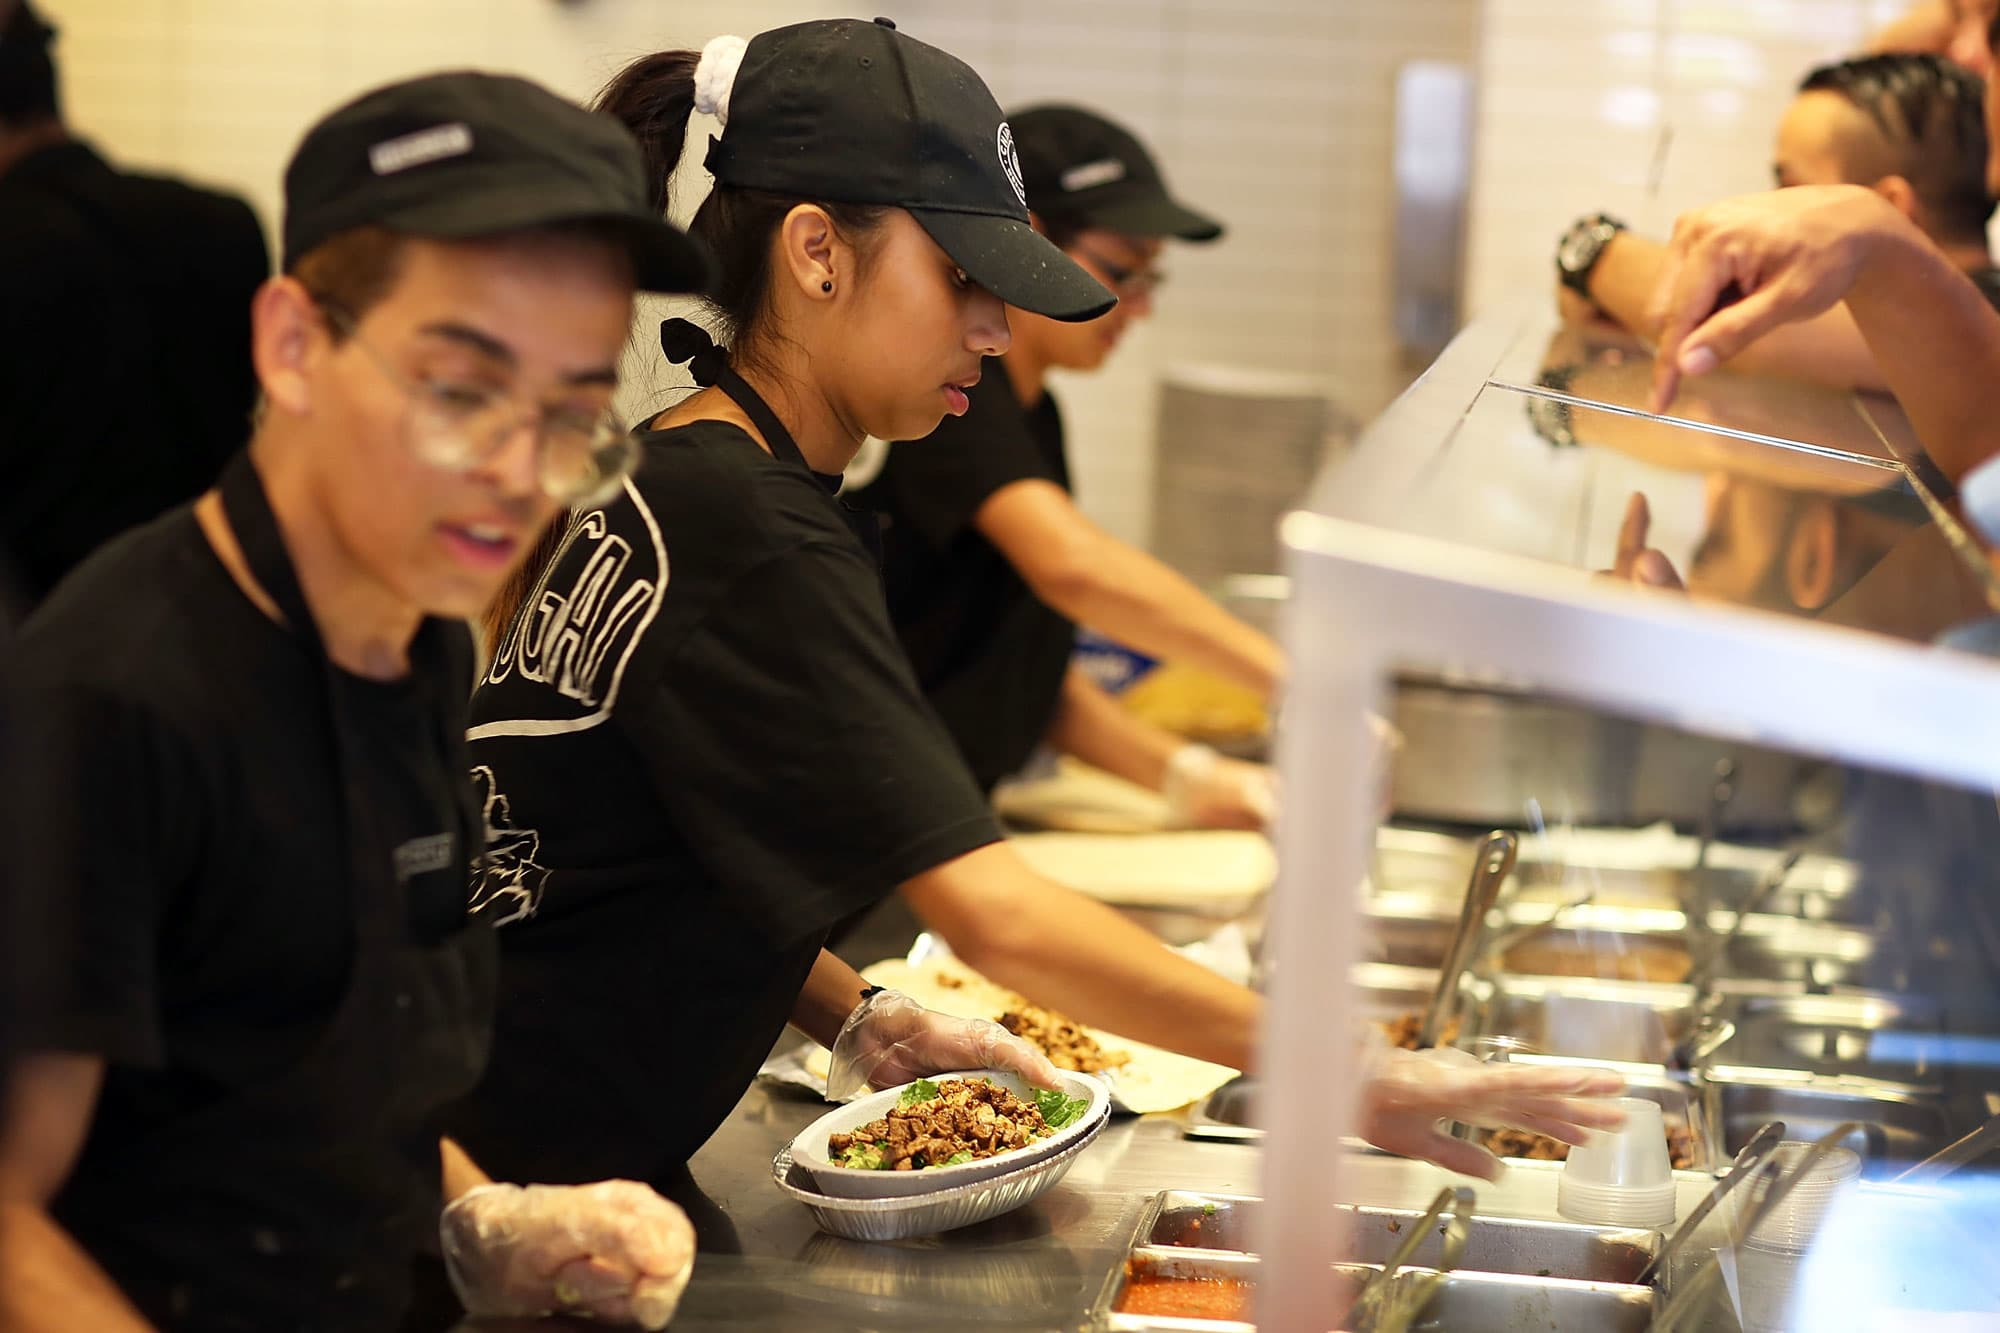 Chipotle's norovirus outbreak was the result of lax sick